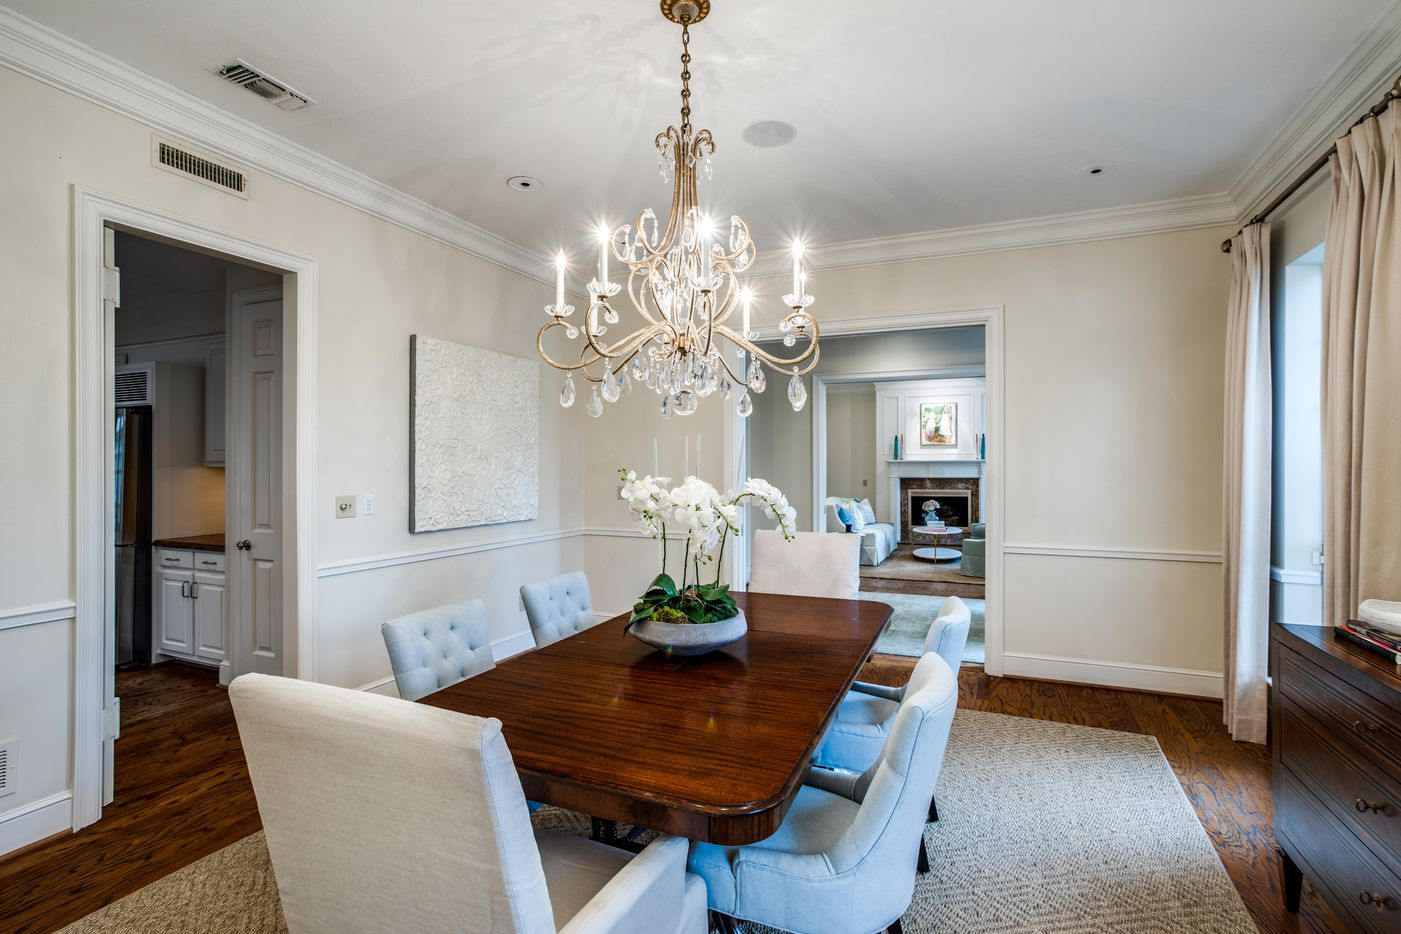 Take a look at the house at 4200 Stanhope Street in Dallas, TX,